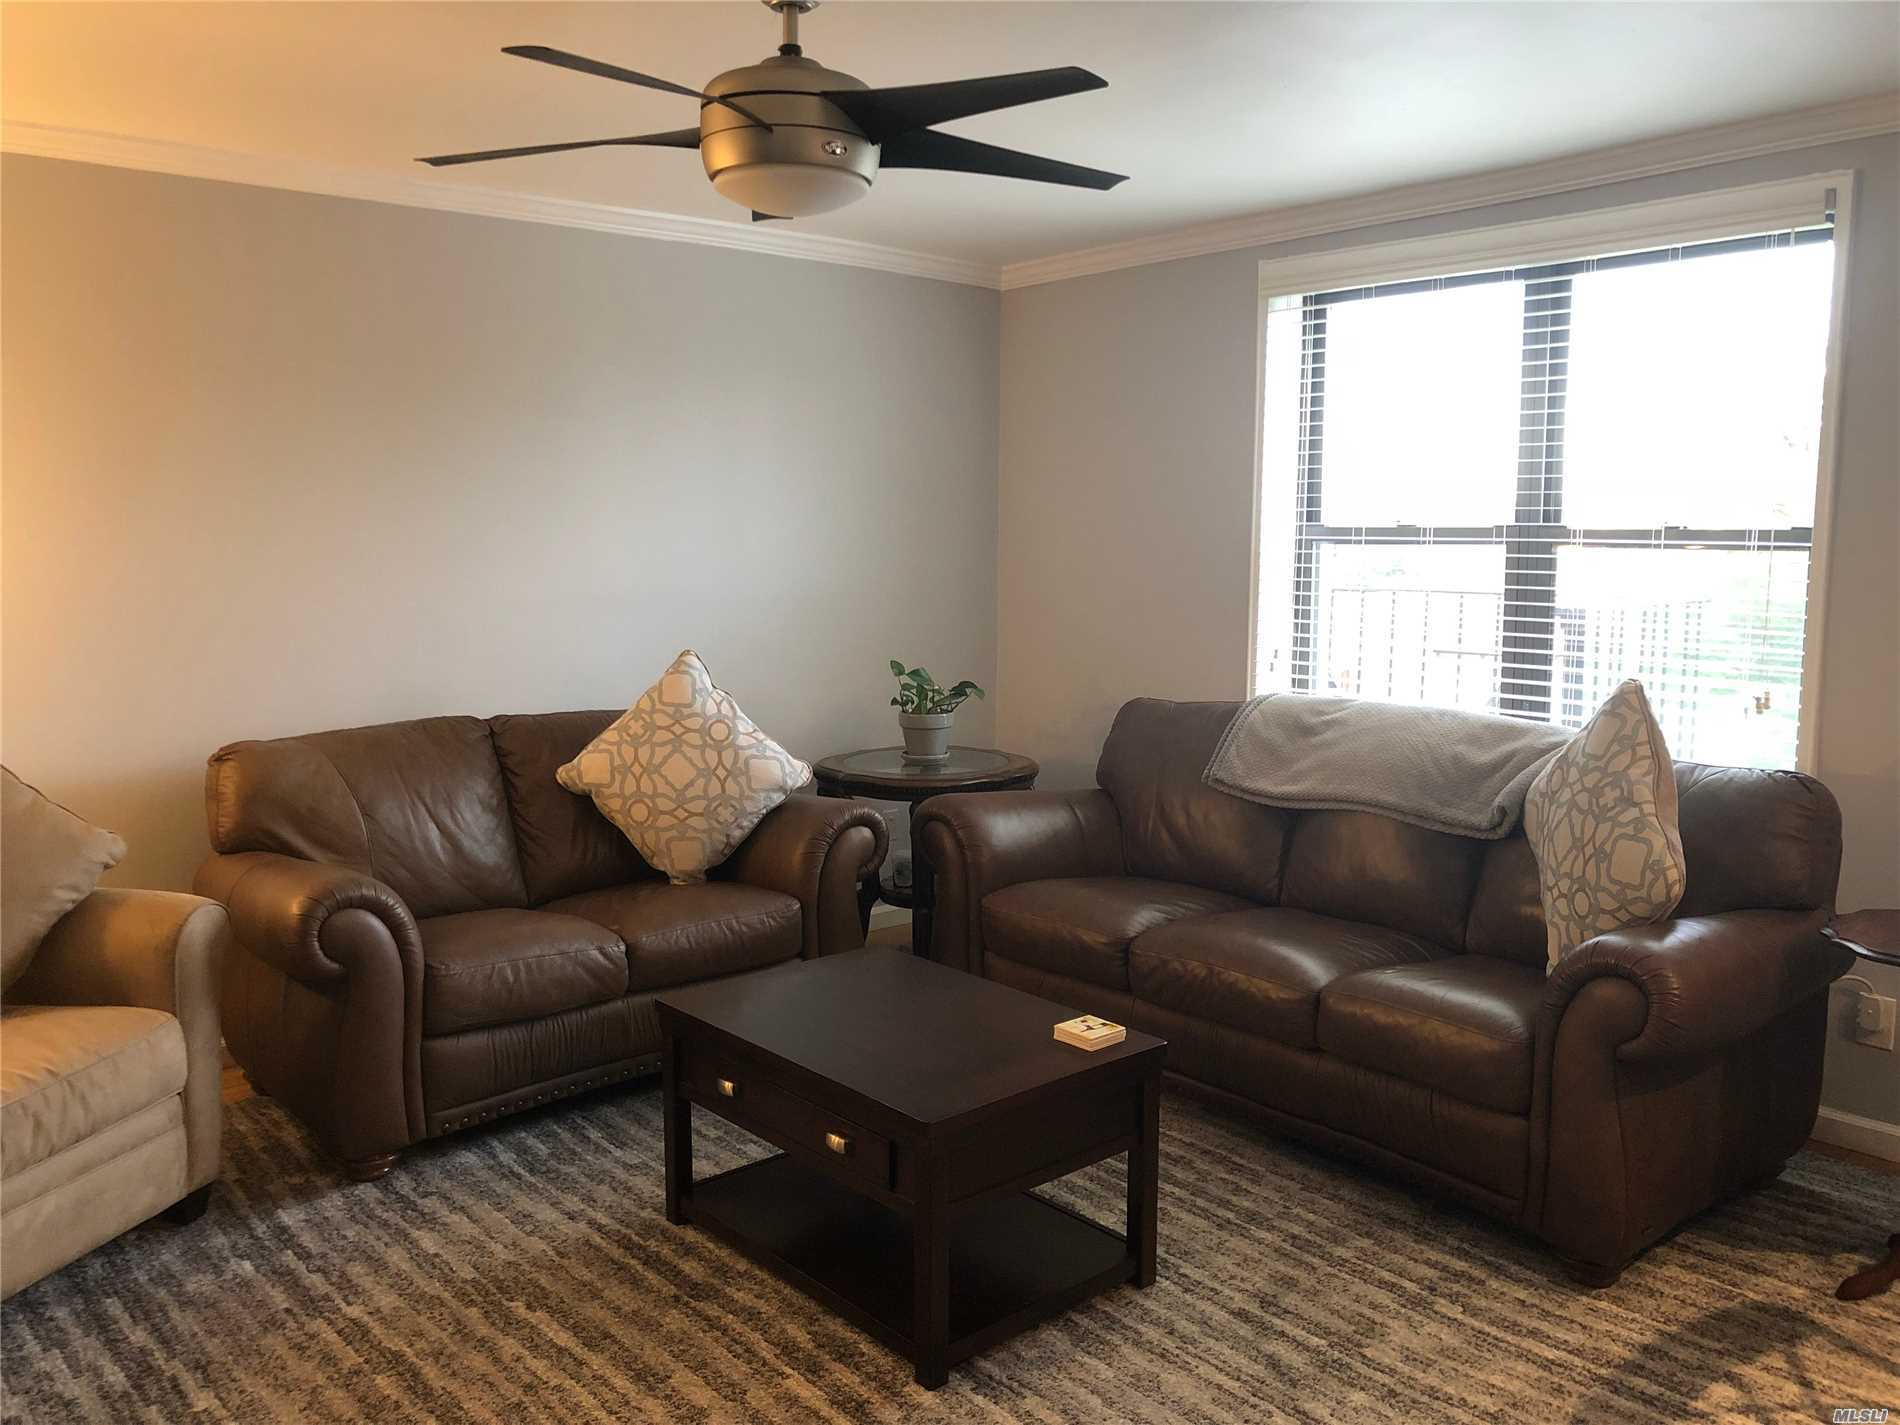 Mint Condition Bright Sunny 1 Bedroom New Stainless Steel Appliances, Eat In Kitchen With Granite Counters That Opens Into Living Room. Extremely Well Kept Building With New Laundry Rooms. Waiting List For Garage. Only 3 Blocks To The Bell Blvd, The Lirr, Buses, Restaurants And Shopping.